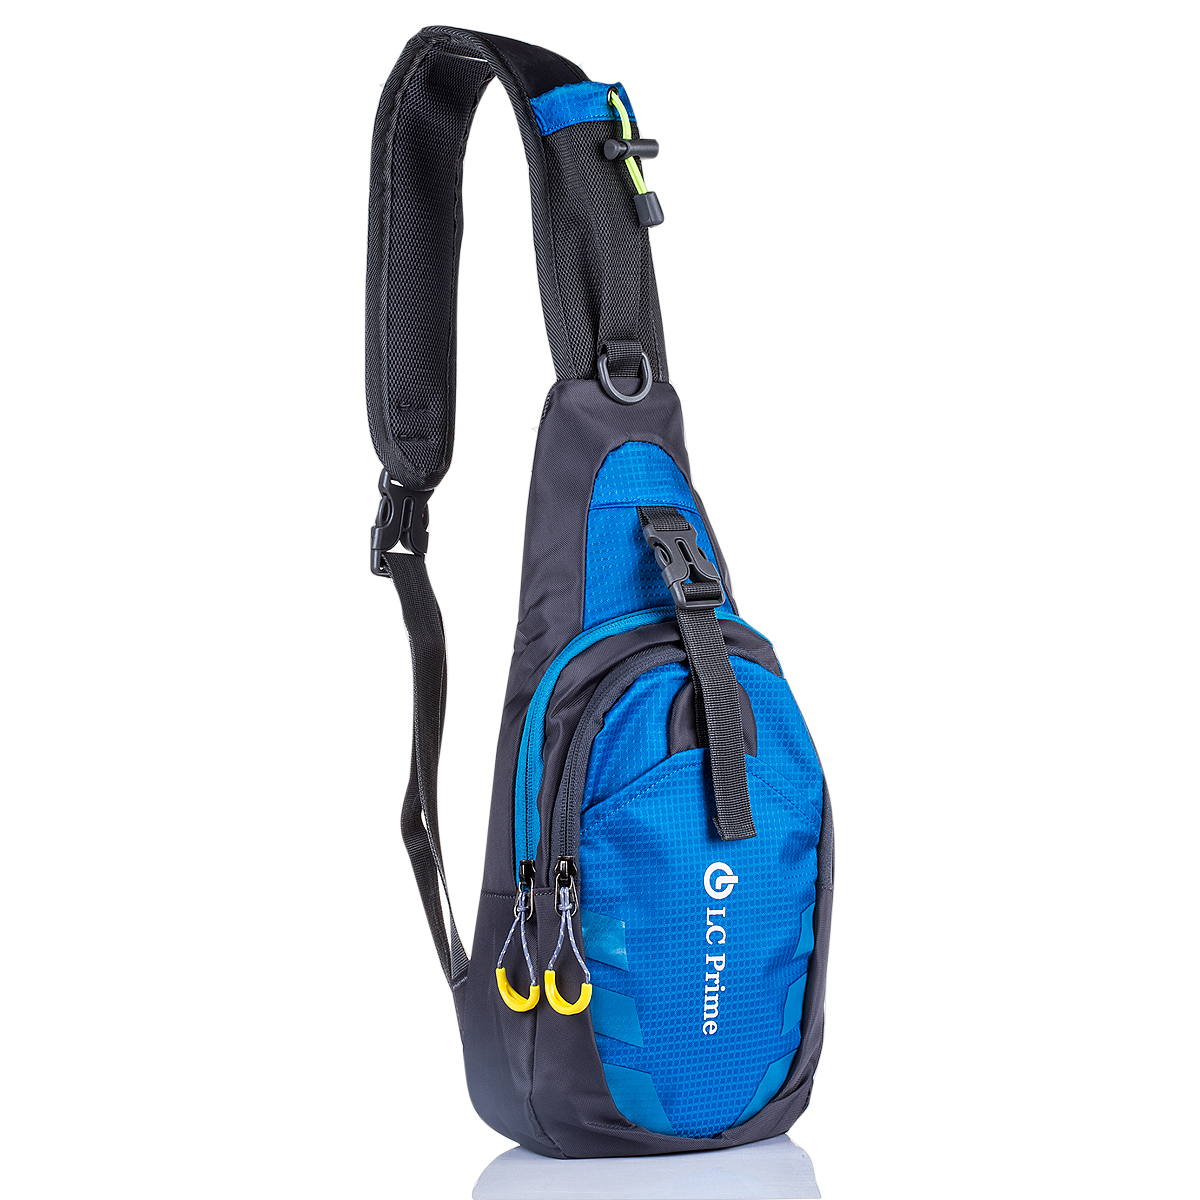 Sling Bag Chest Shoulder Unbalance Gym Fanny Backpack Sack Satchel Outdoor Bike by LC Prime